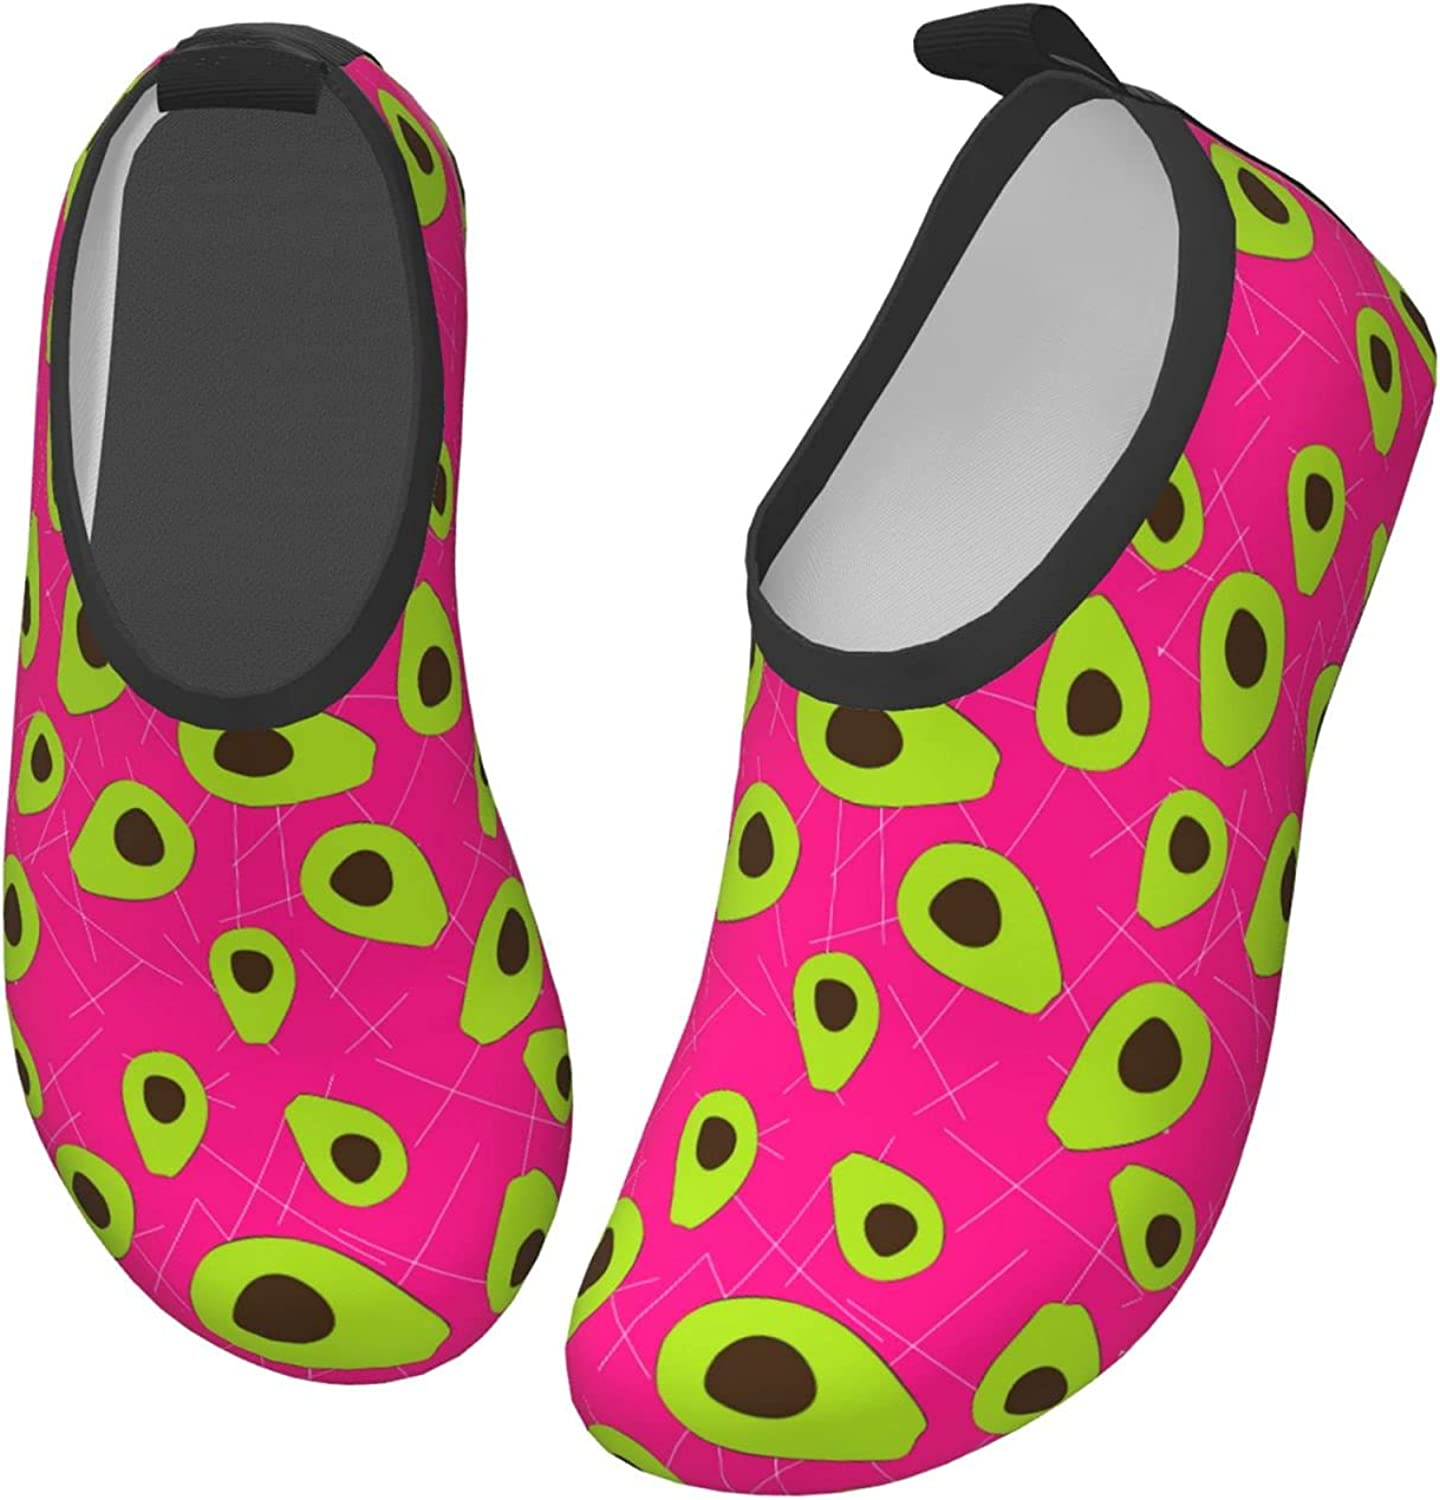 Jedenkuku Rose Red Avocado Pattern Cute Children's Water Shoes Feel Barefoot for Swimming Beach Boating Surfing Yoga